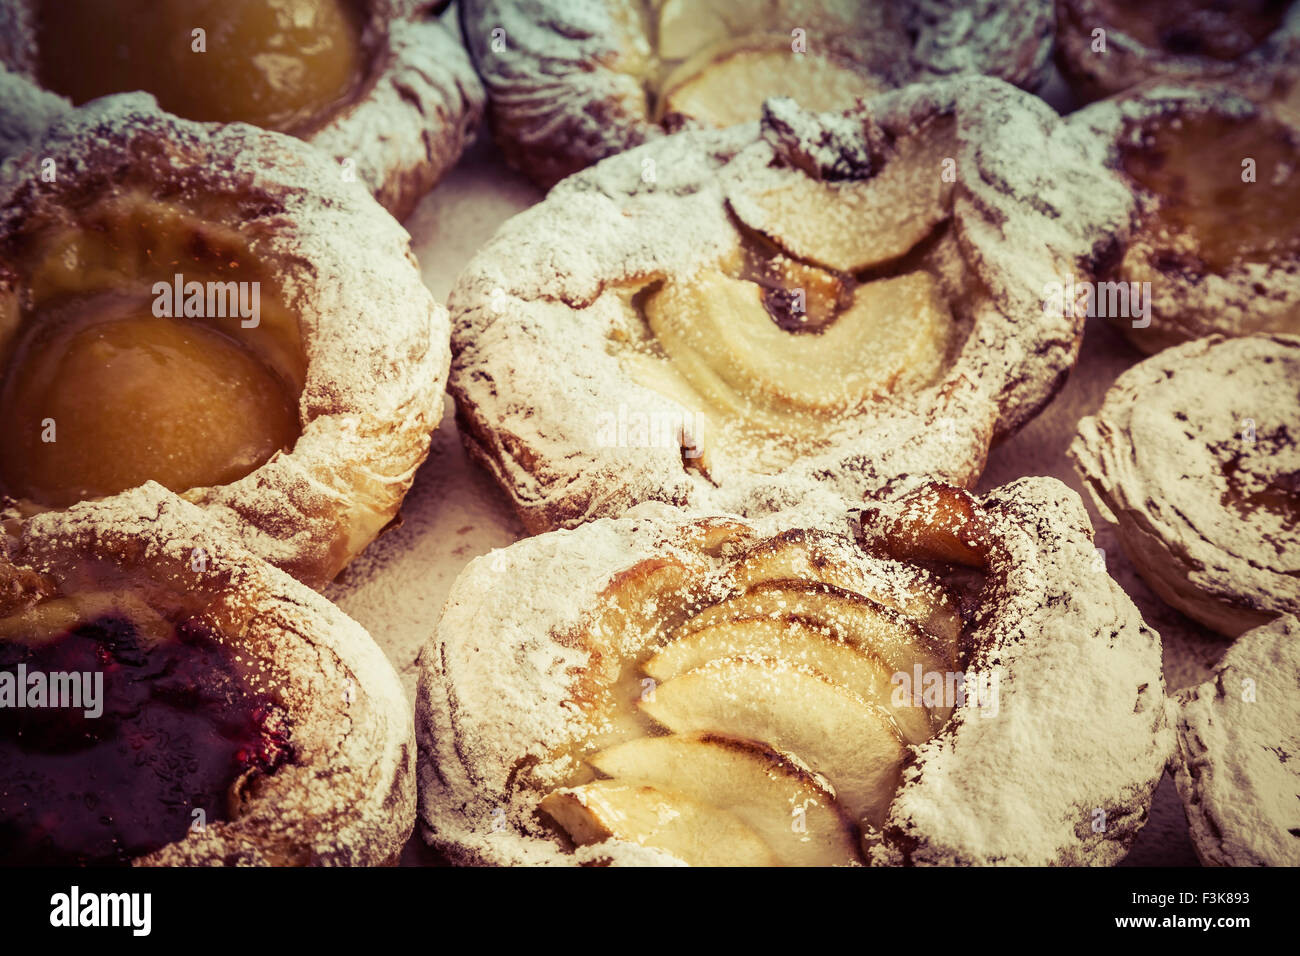 Freshly baked, lightly dusted, pastries made in a bakery in the UK - Stock Image